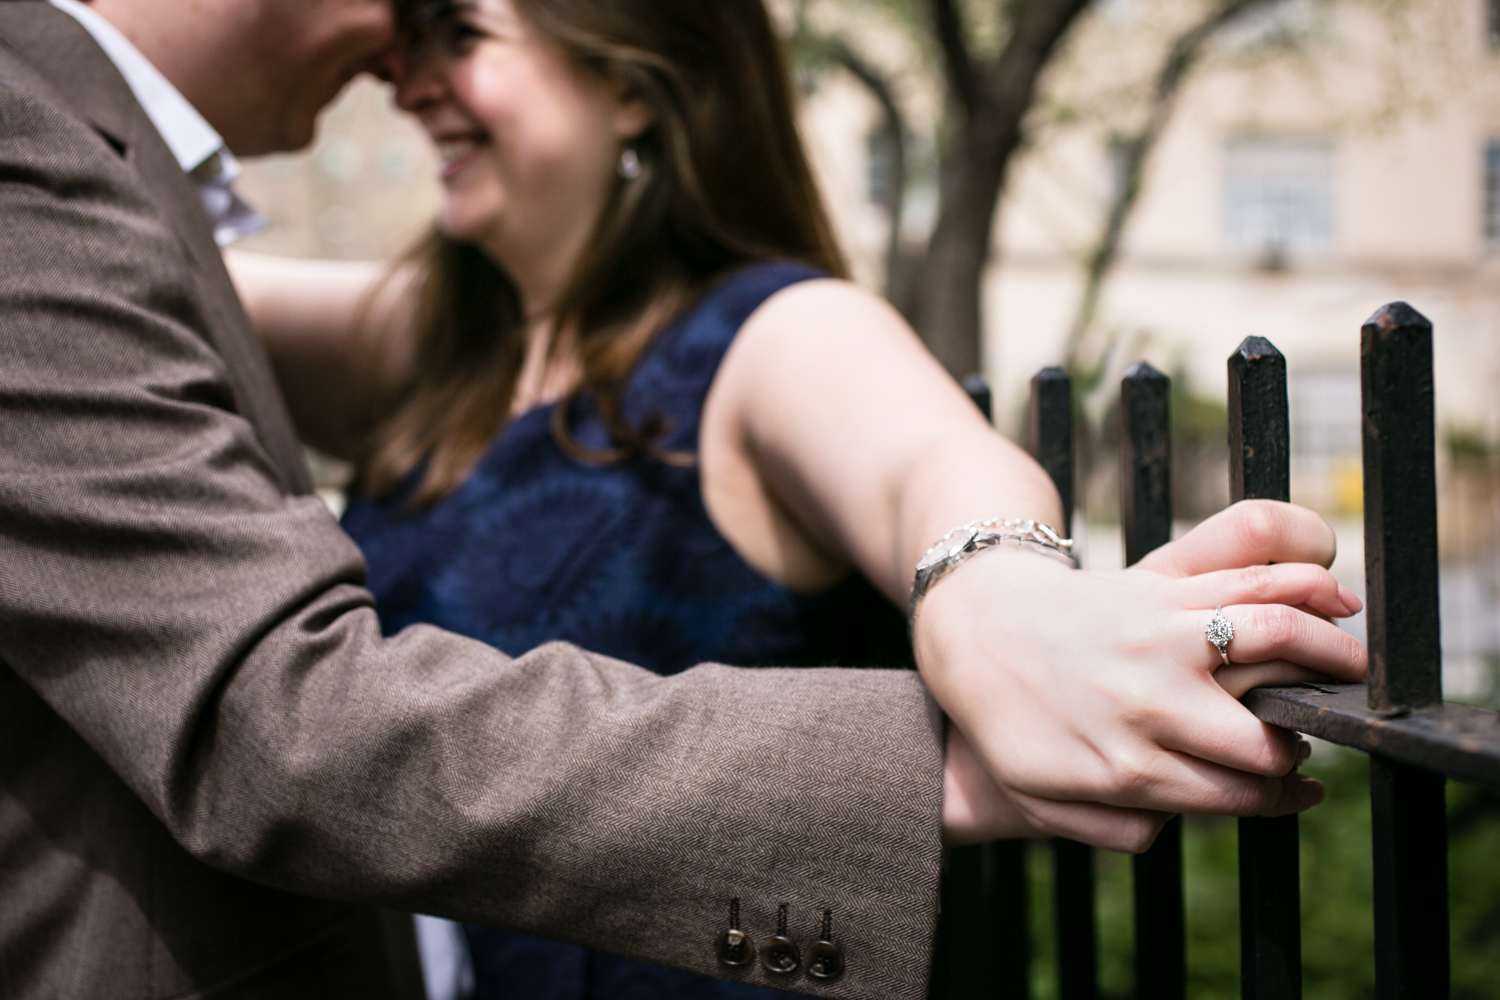 Close up on couple holding hands against fence railing